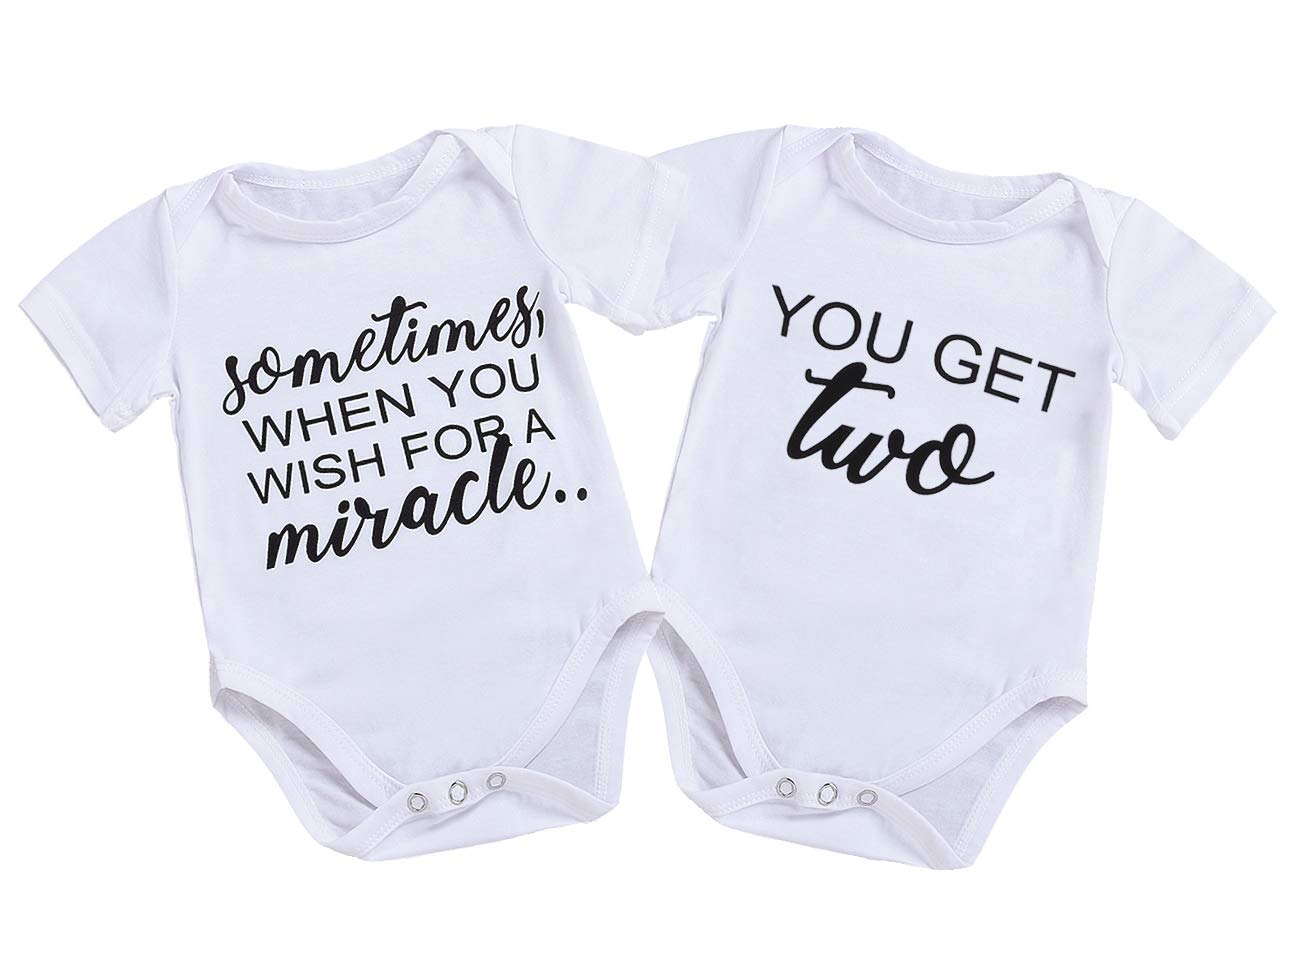 Mini honey Infant Twins Baby Boys Girls Short Sleeve Letter Print Romper Bodysuit Summer Outfit Clothes (3-6 Months, Sometimes)